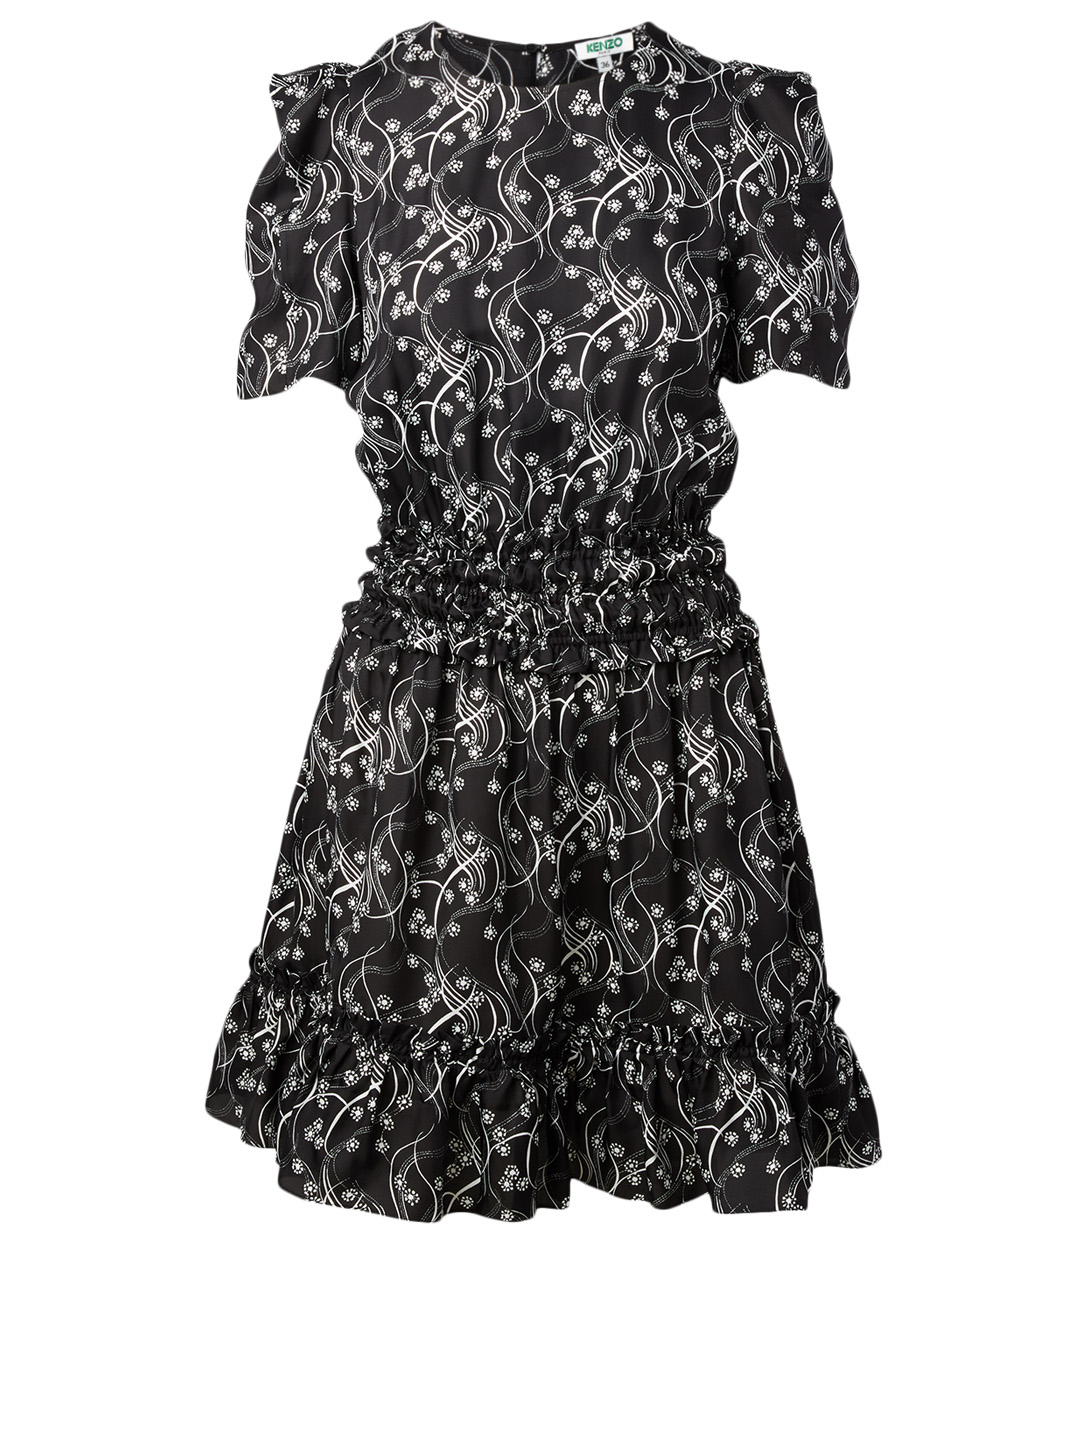 KENZO Silk-Blend Smocked Dress Women's Black